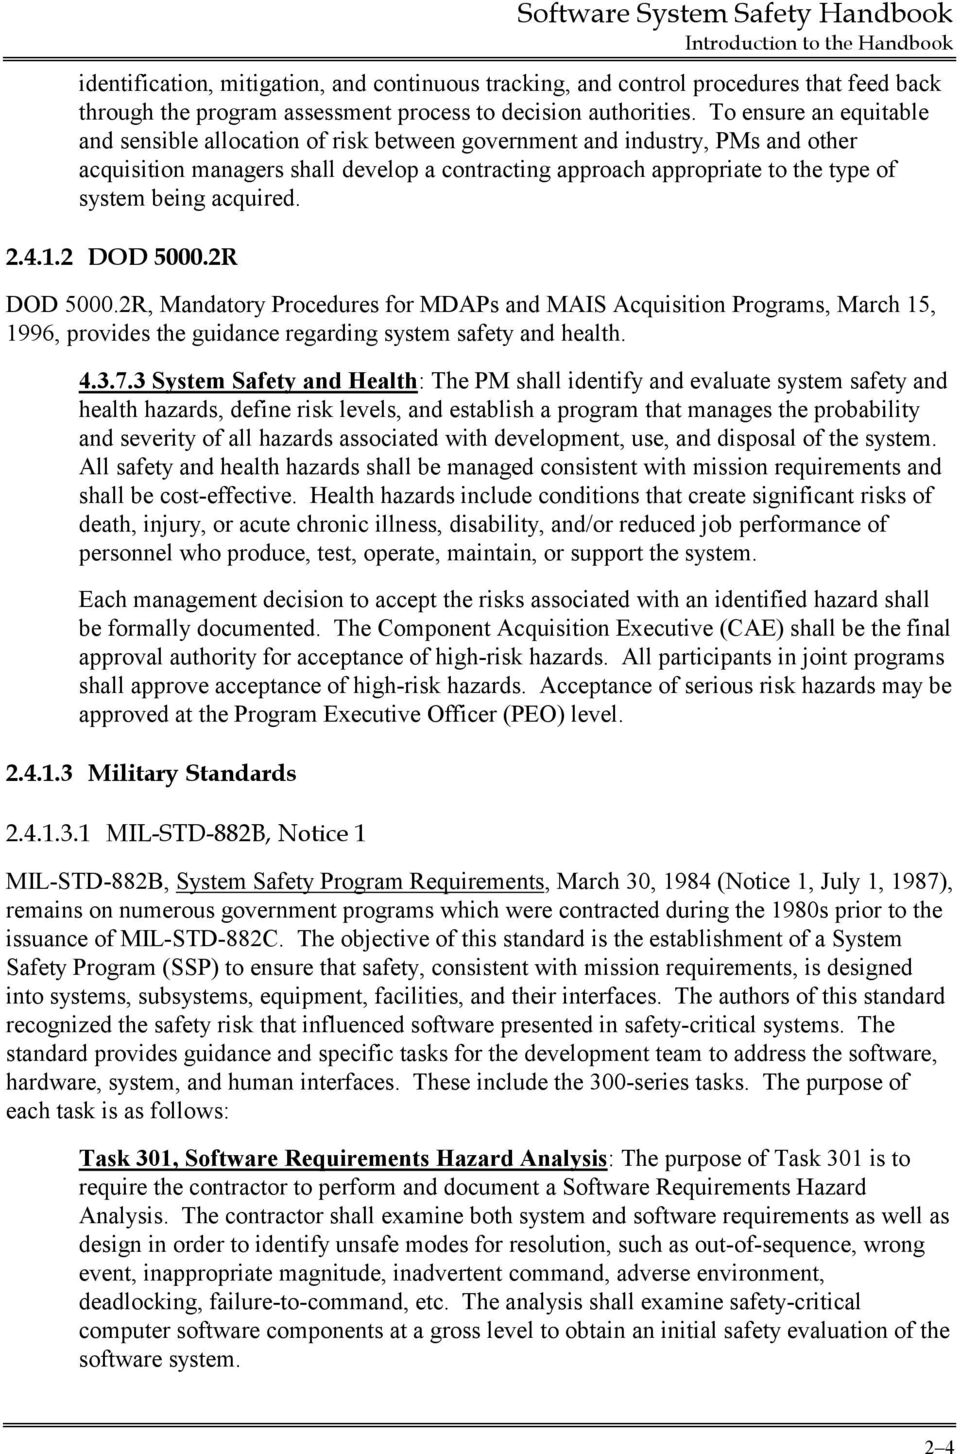 acquired. 2.4.1.2 DOD 5000.2R DOD 5000.2R, Mandatory Procedures for MDAPs and MAIS Acquisition Programs, March 15, 1996, provides the guidance regarding system safety and health. 4.3.7.